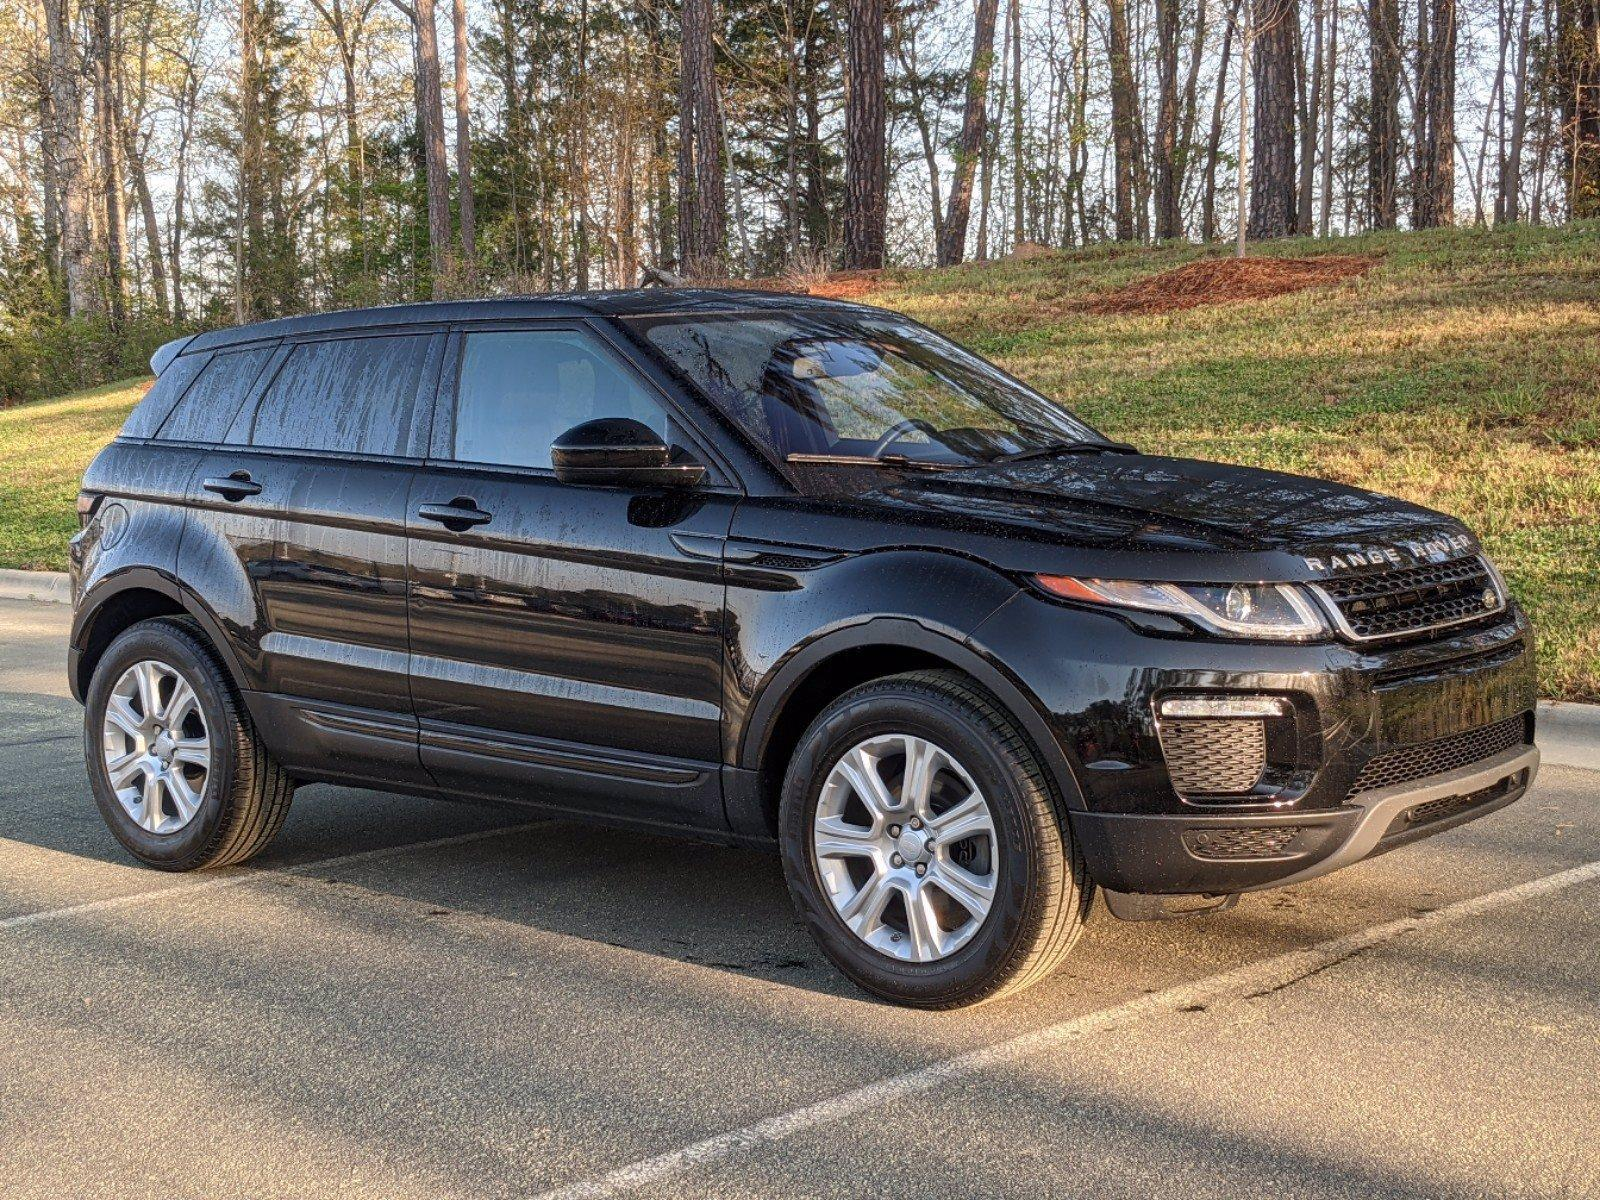 2018 Land Rover Range Rover Evoque Vehicle Photo in Cary, NC 27511